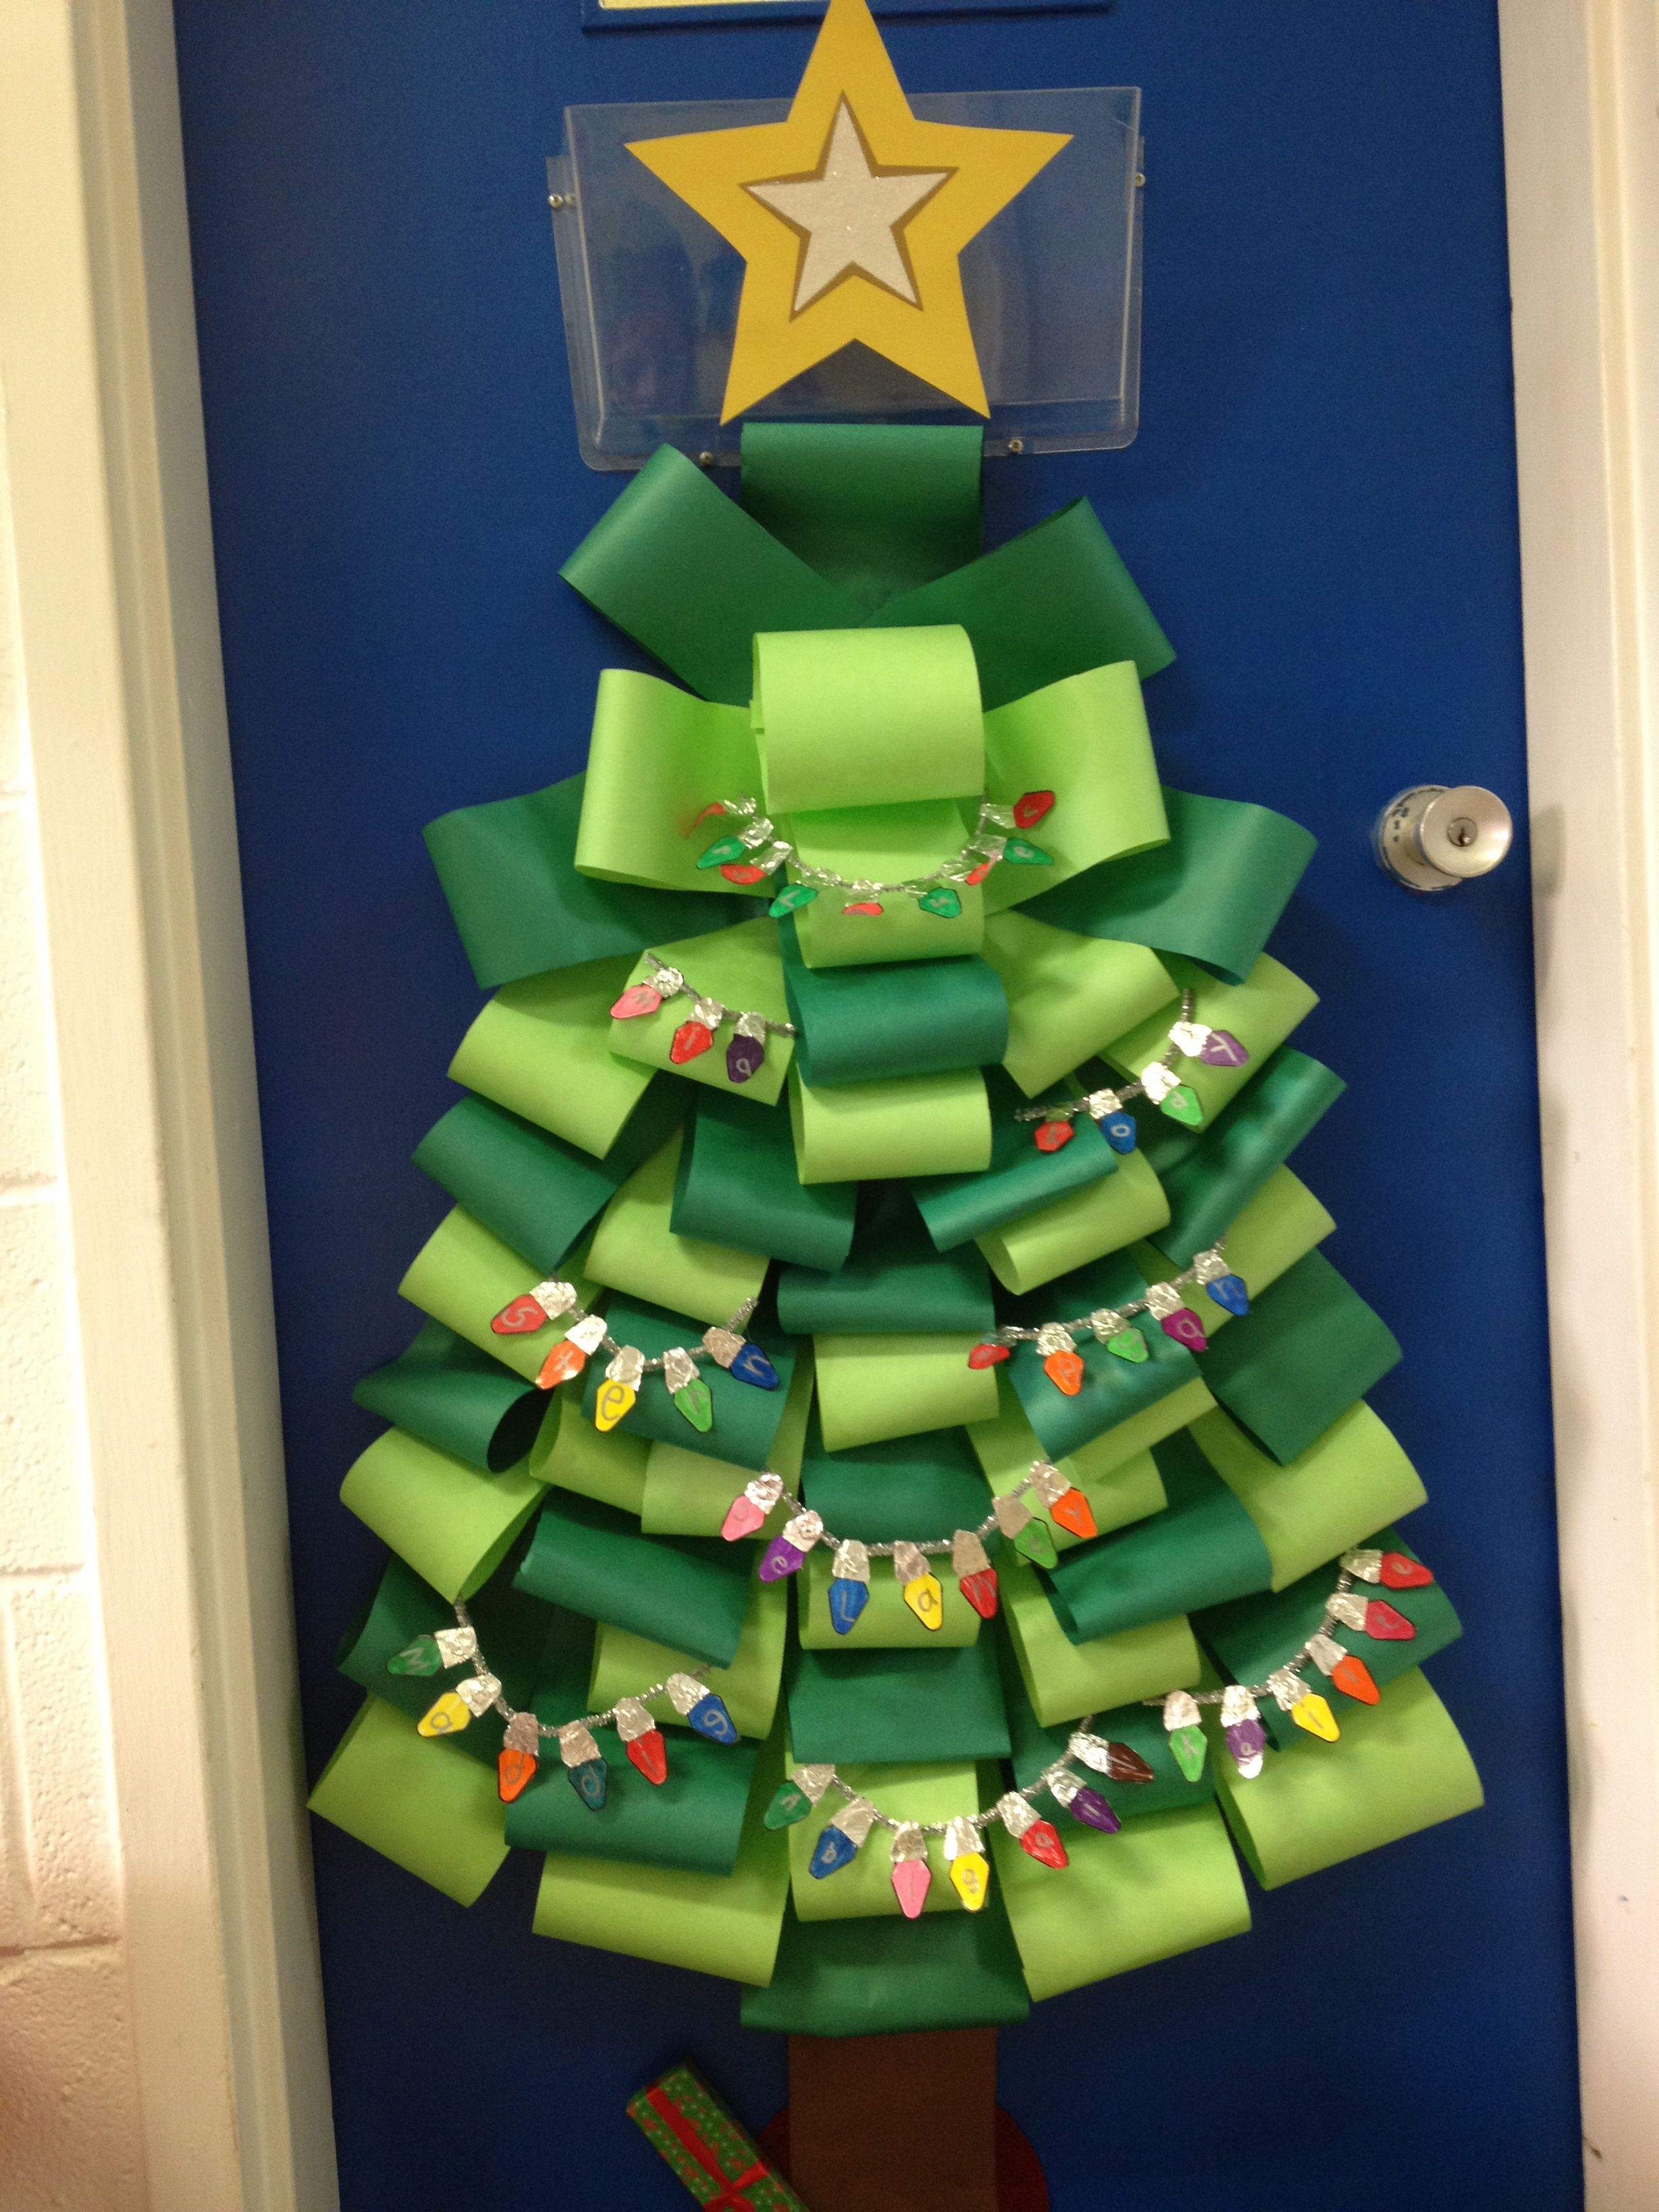 21 Teachers Who Nailed The Holidays Christmas Tree Decorationsschool Door